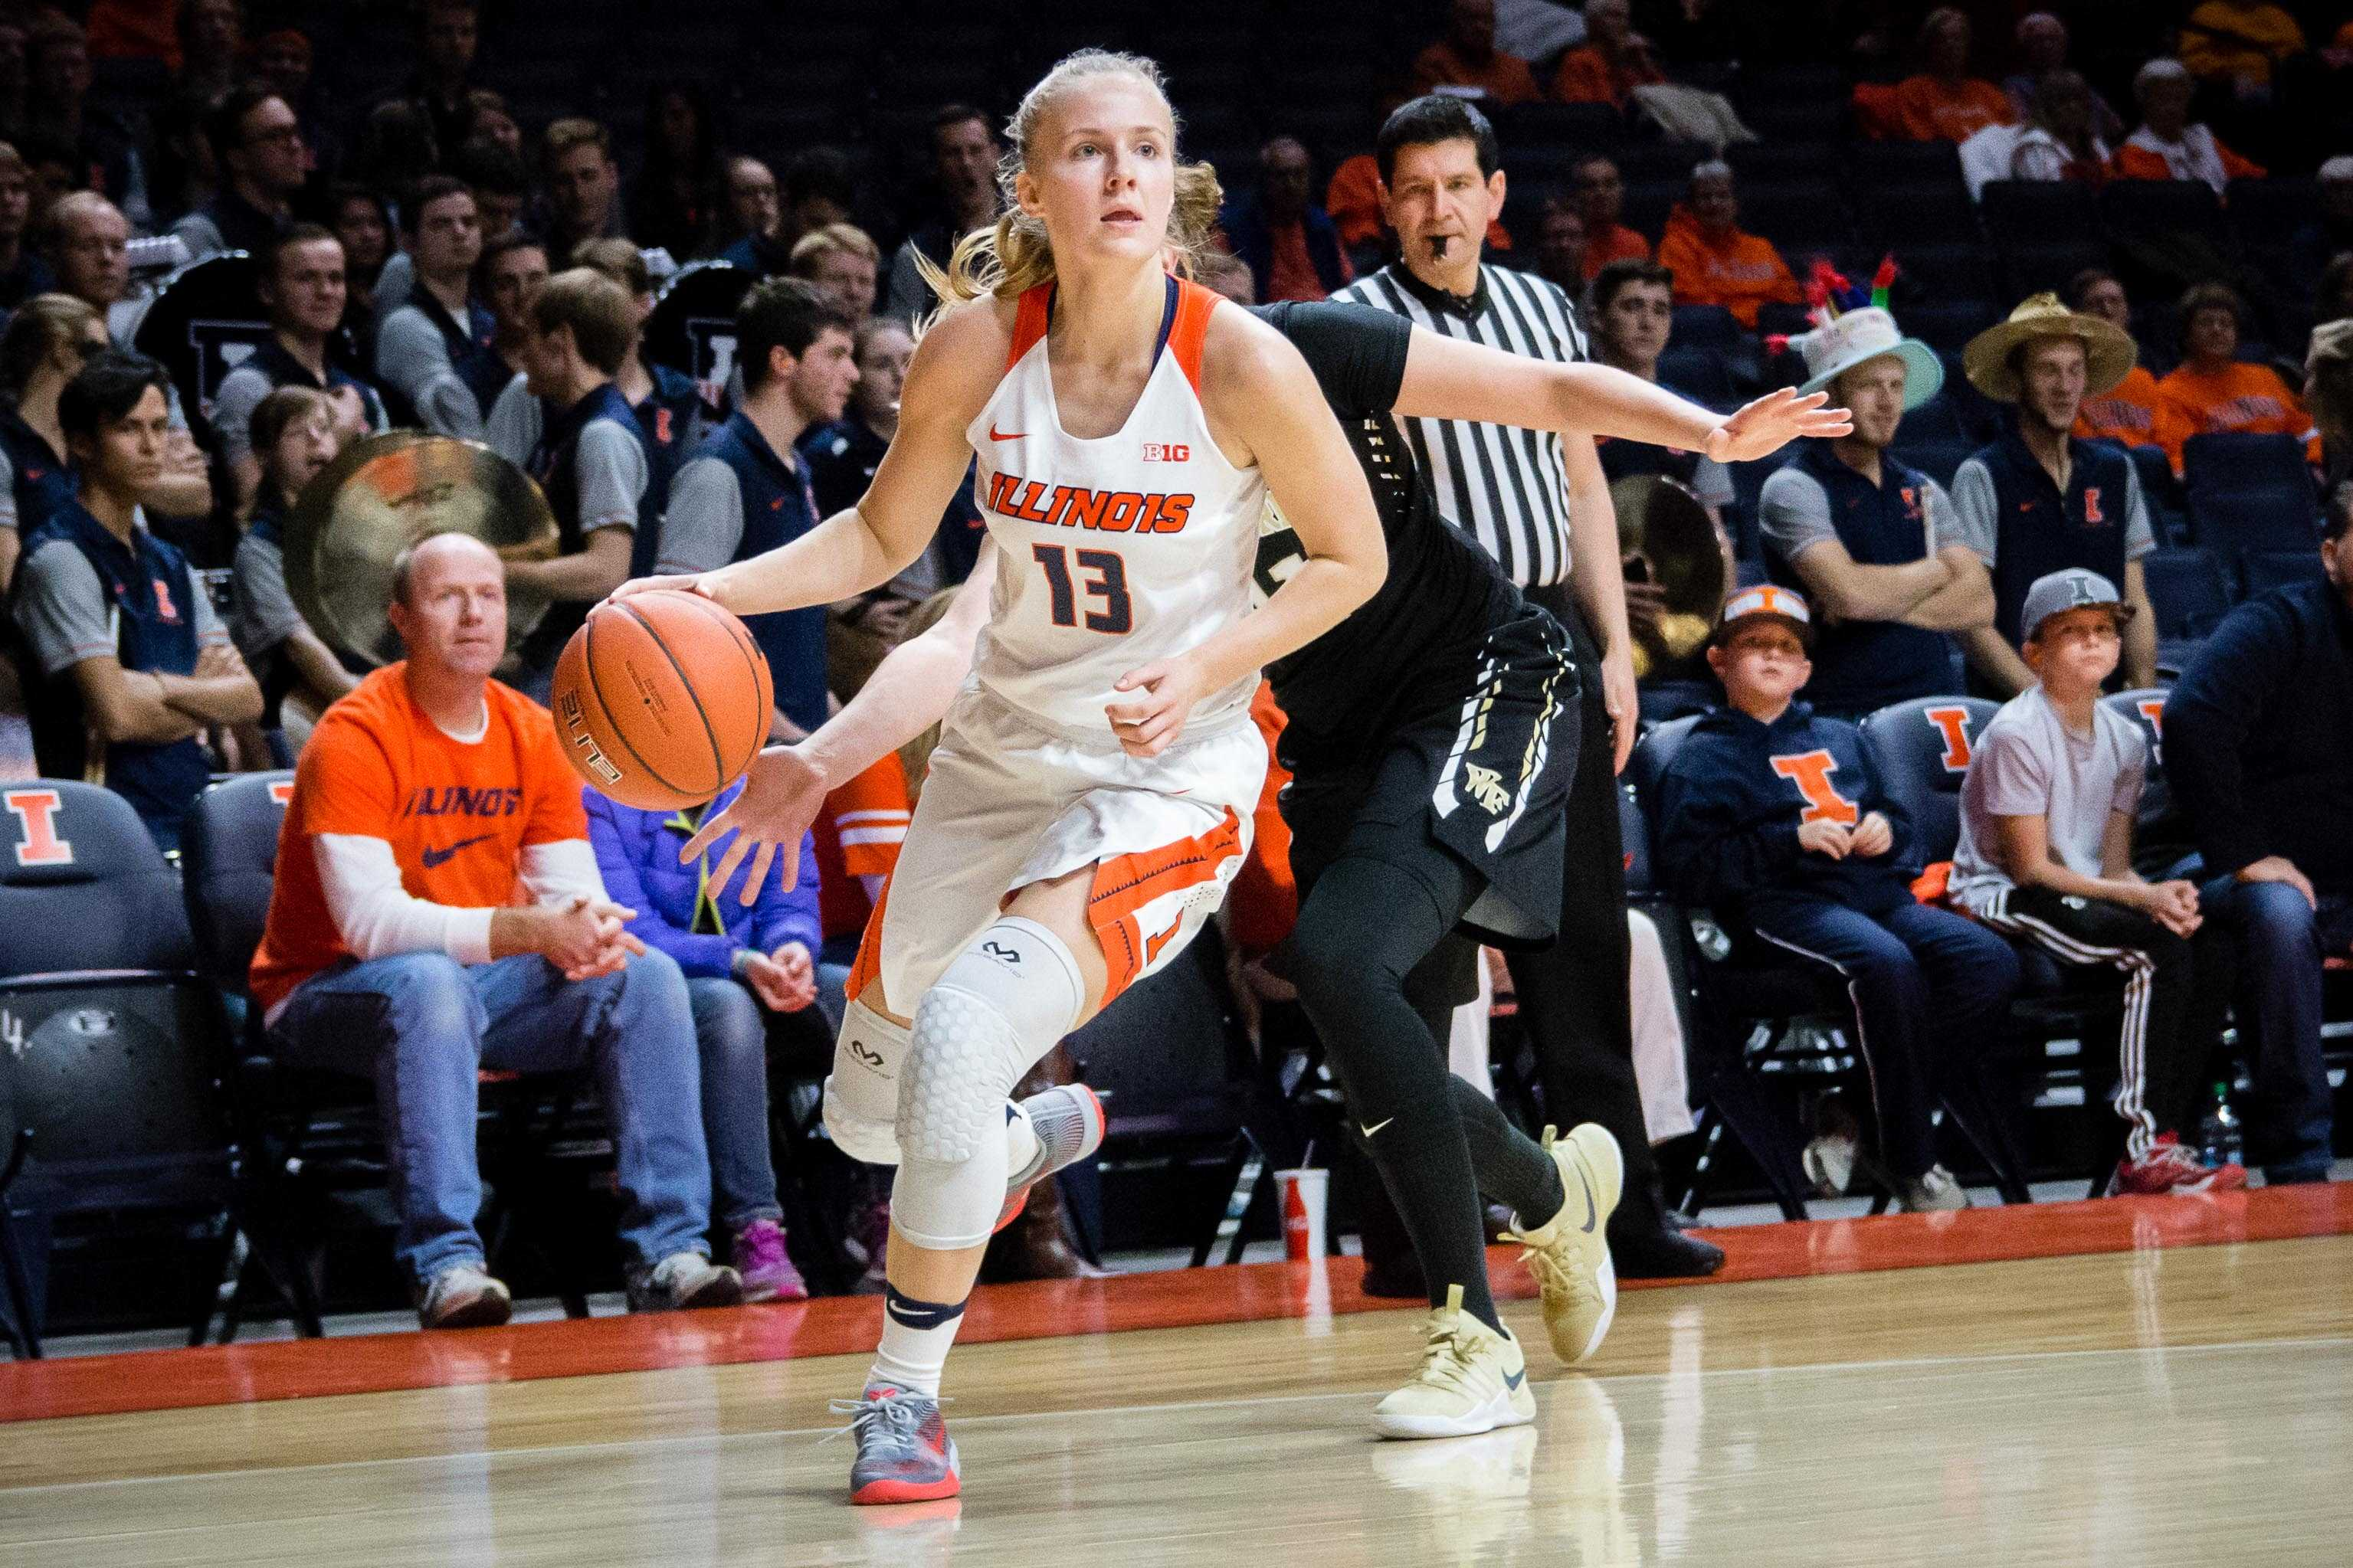 Illinois' Petra Holešínská (13) dribbles around her defender during the game against Wake Forest at State Farm Center on Wednesday, November 30. The Illini lost 79-70.